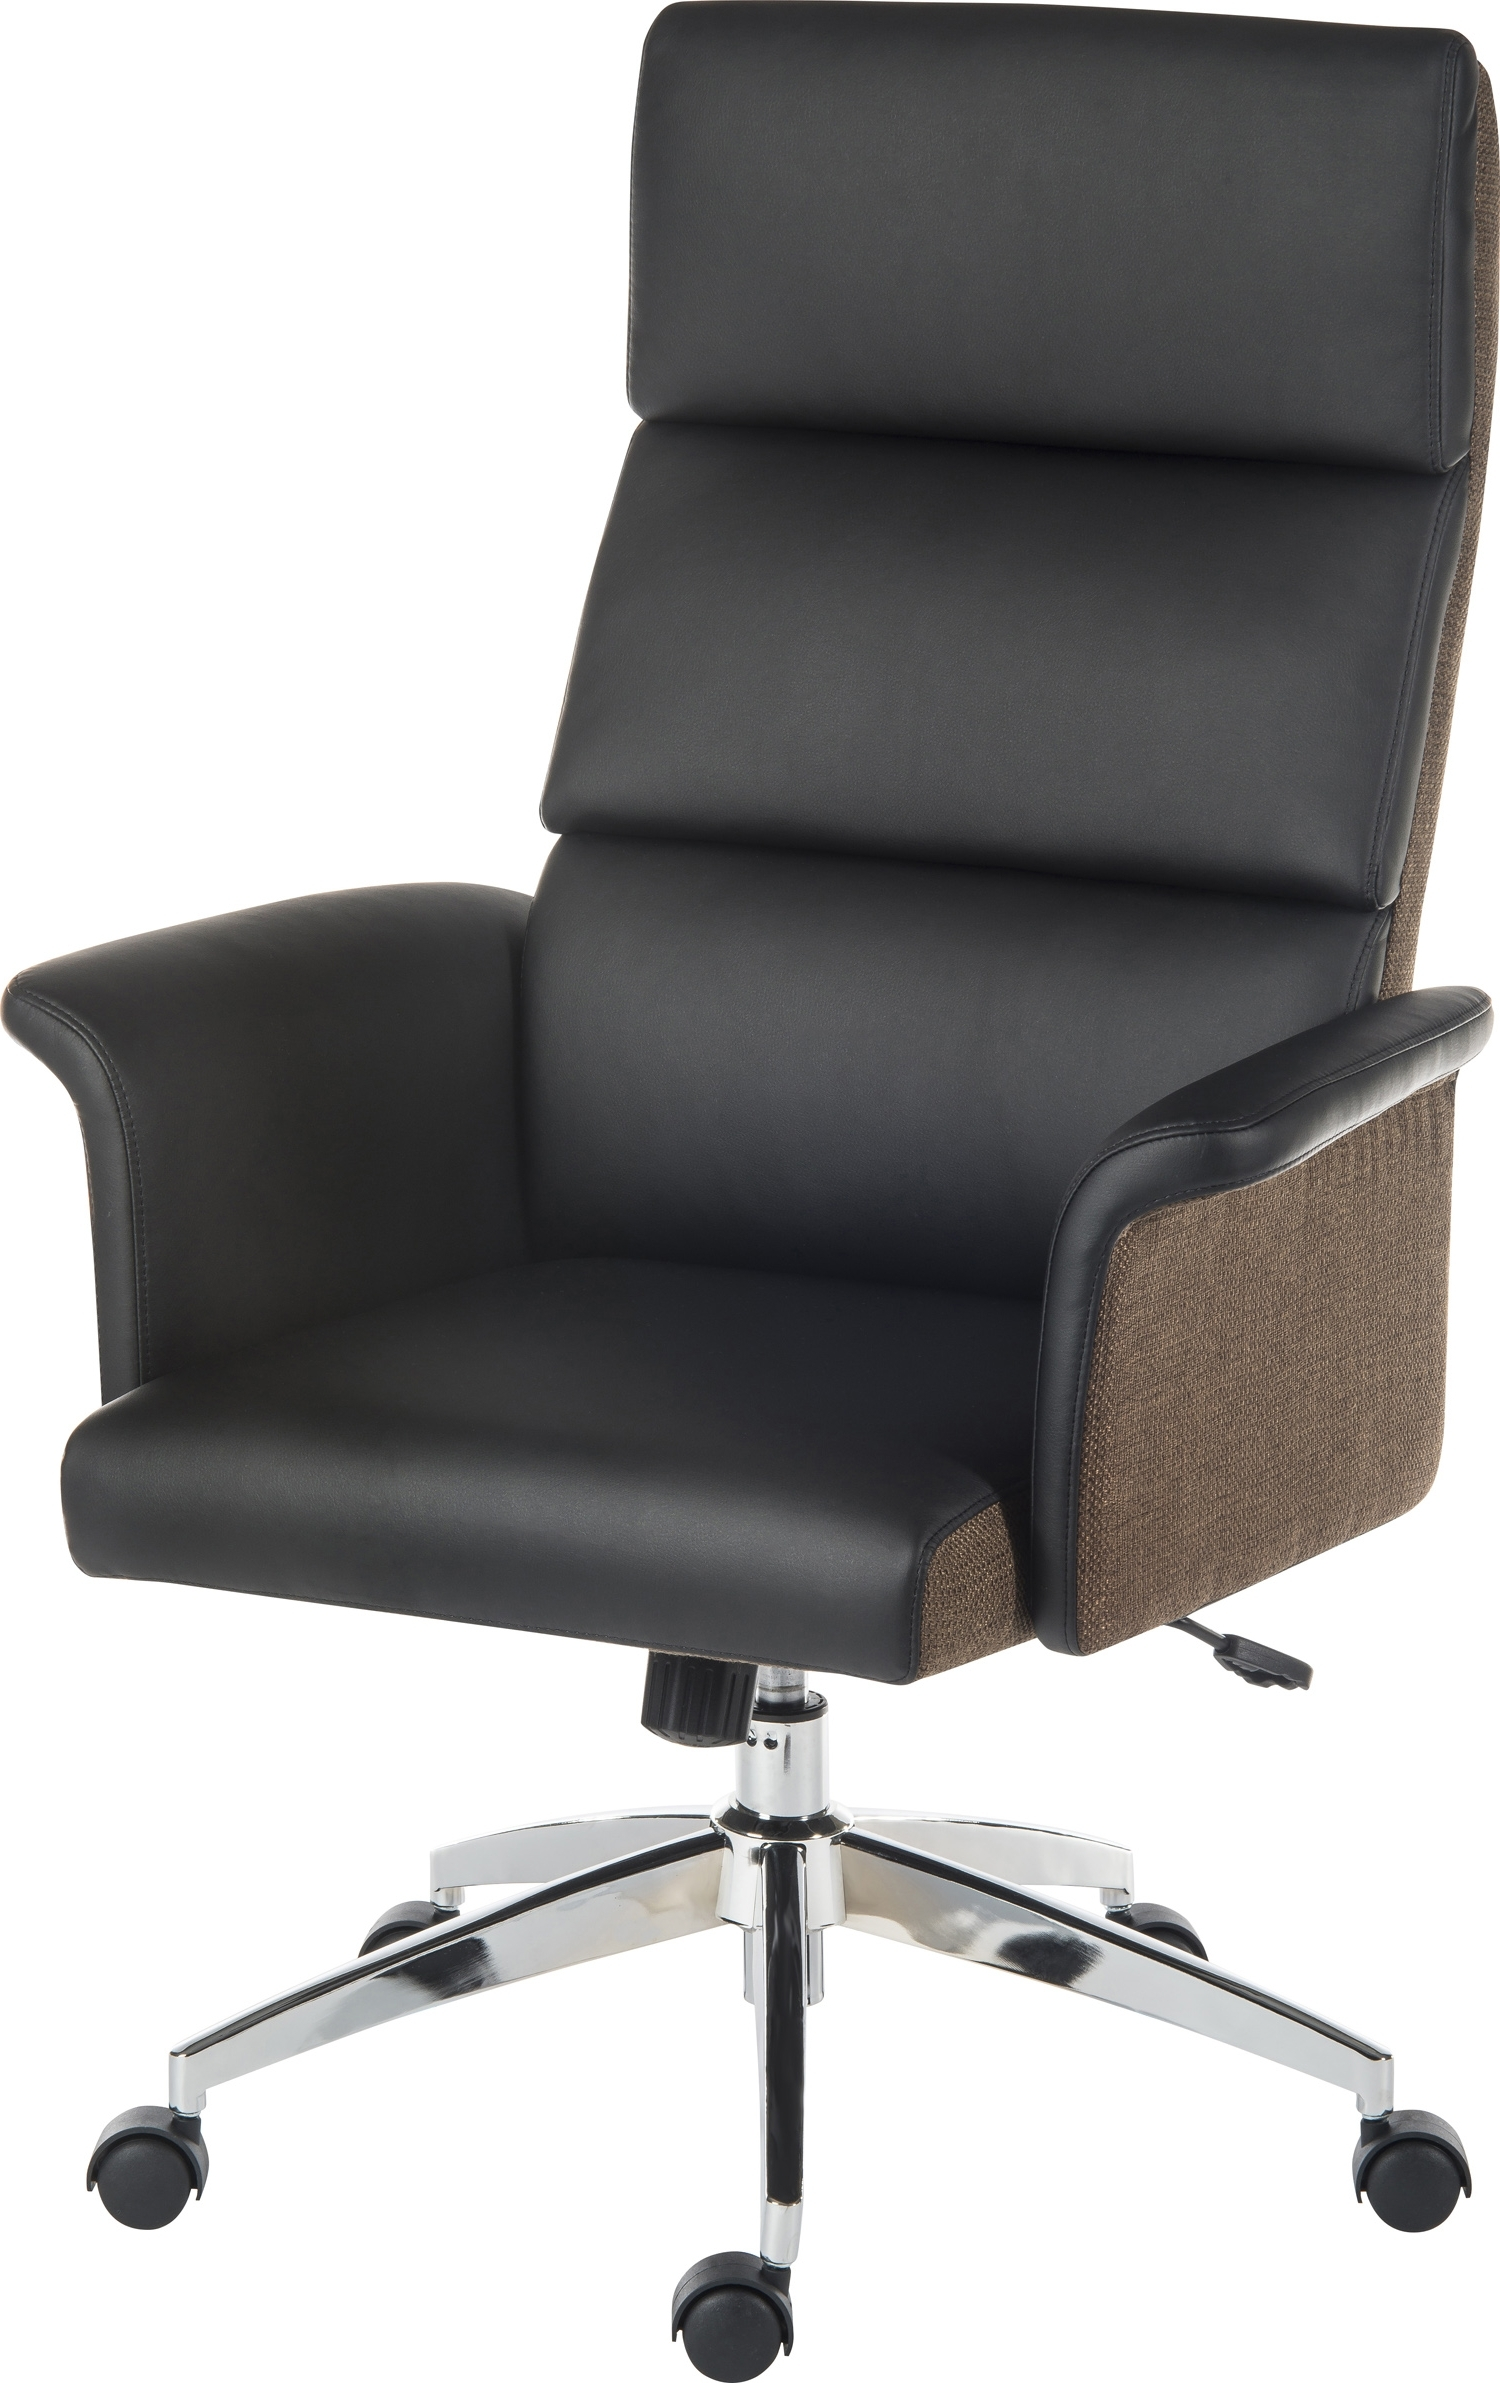 Most Recent Elegance High Backed Retro Executive Office Chair Black (View 11 of 20)